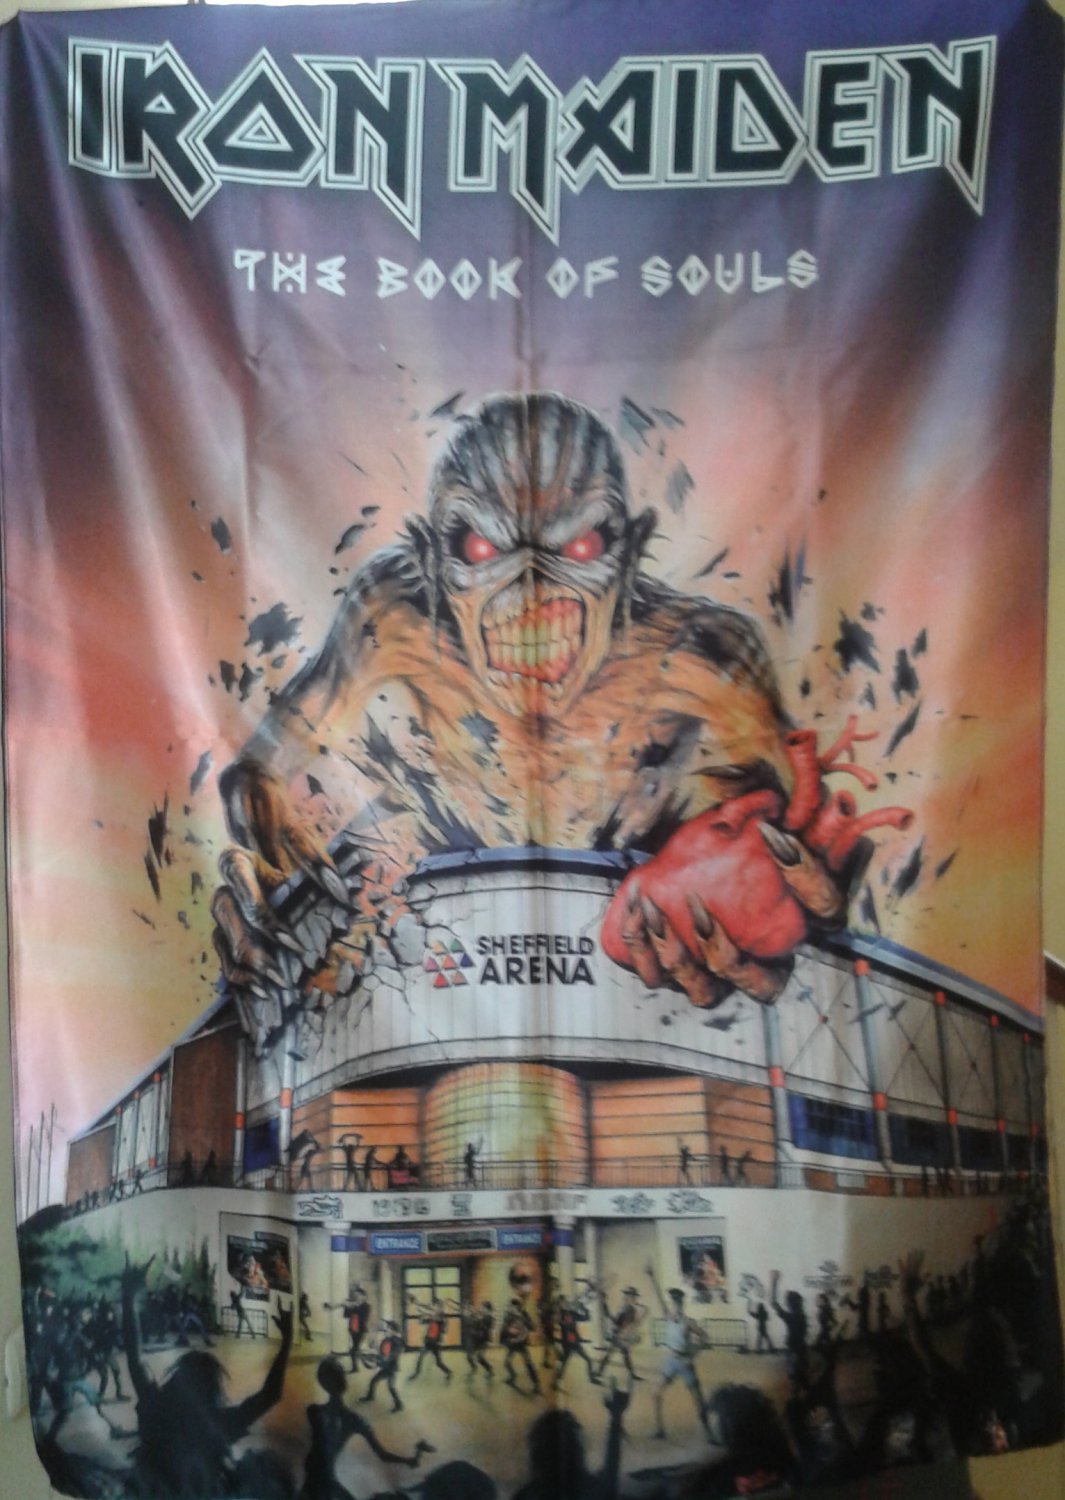 IRON MAIDEN The Book of Souls - UK Tour 2017 Sheffield Arena FLAG CLOTH POSTER